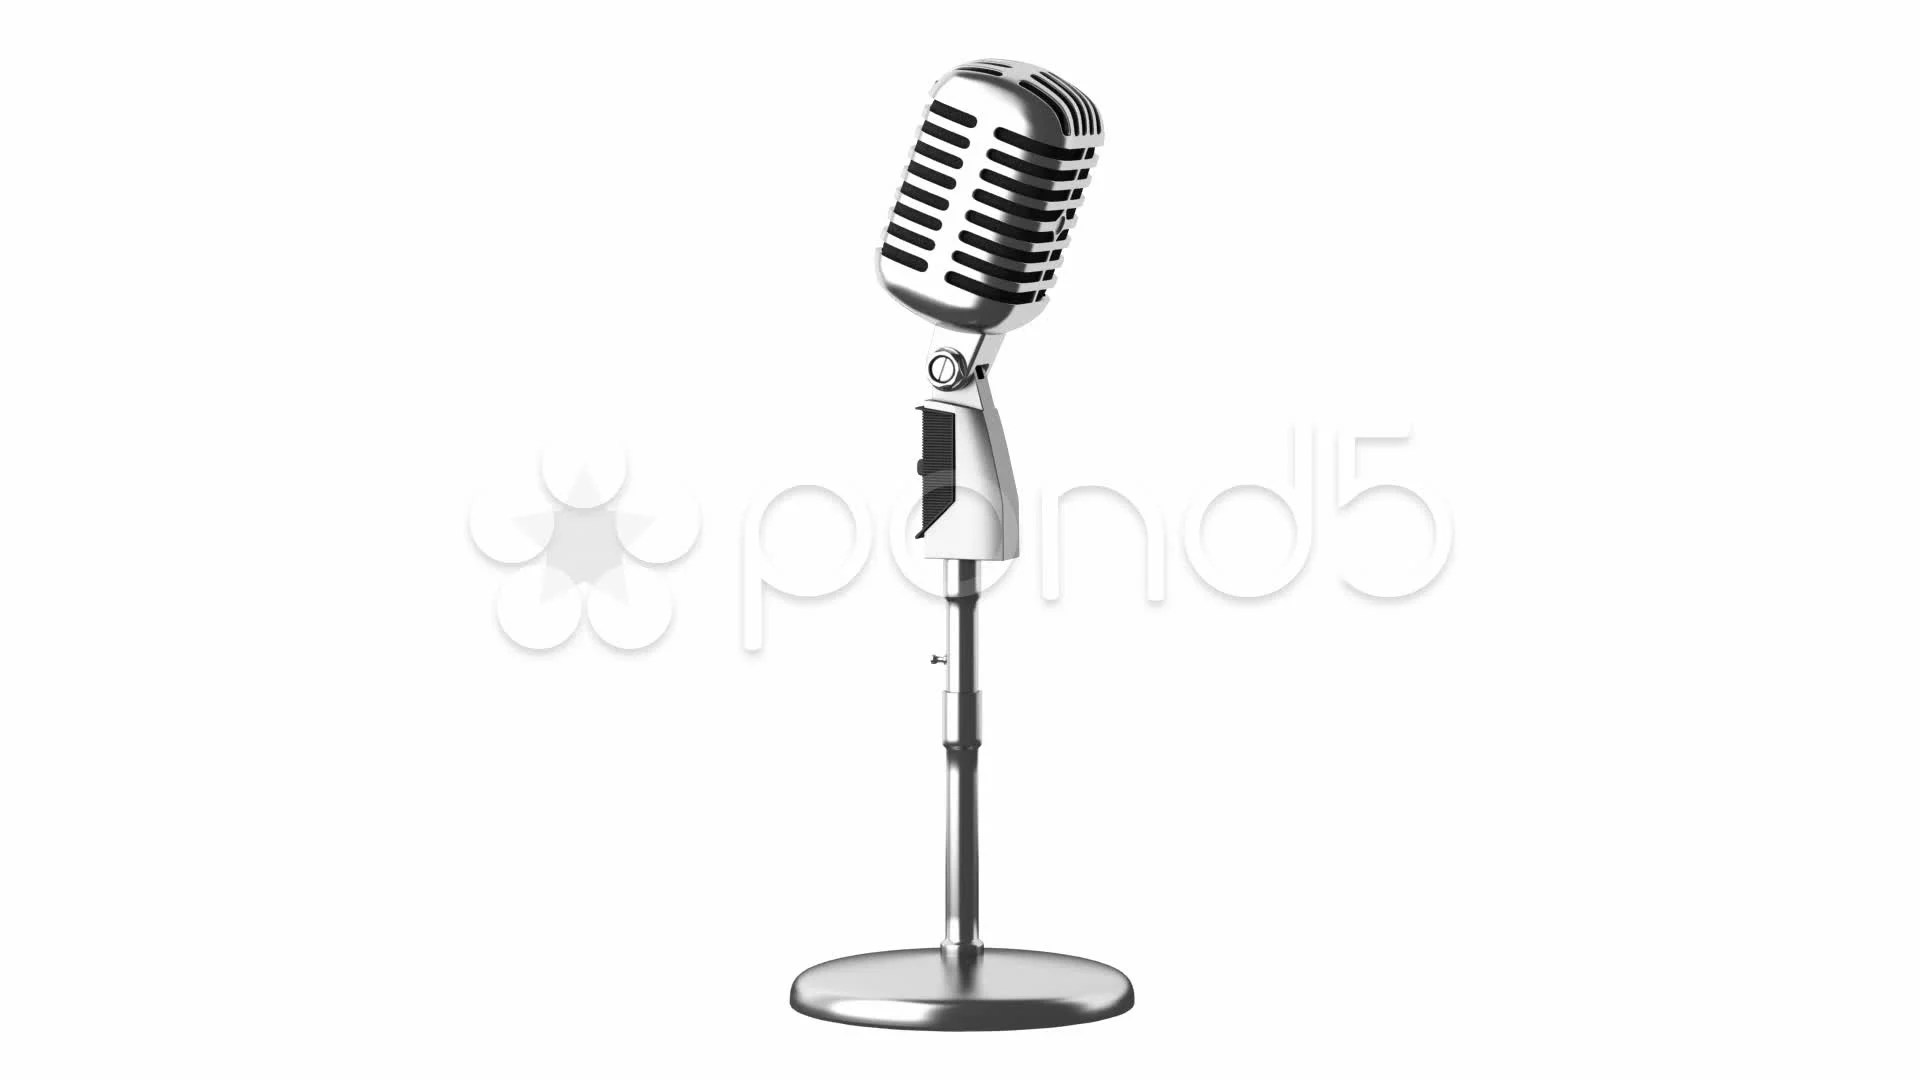 Vintage Microphone Loop Rotate On White Background Stock